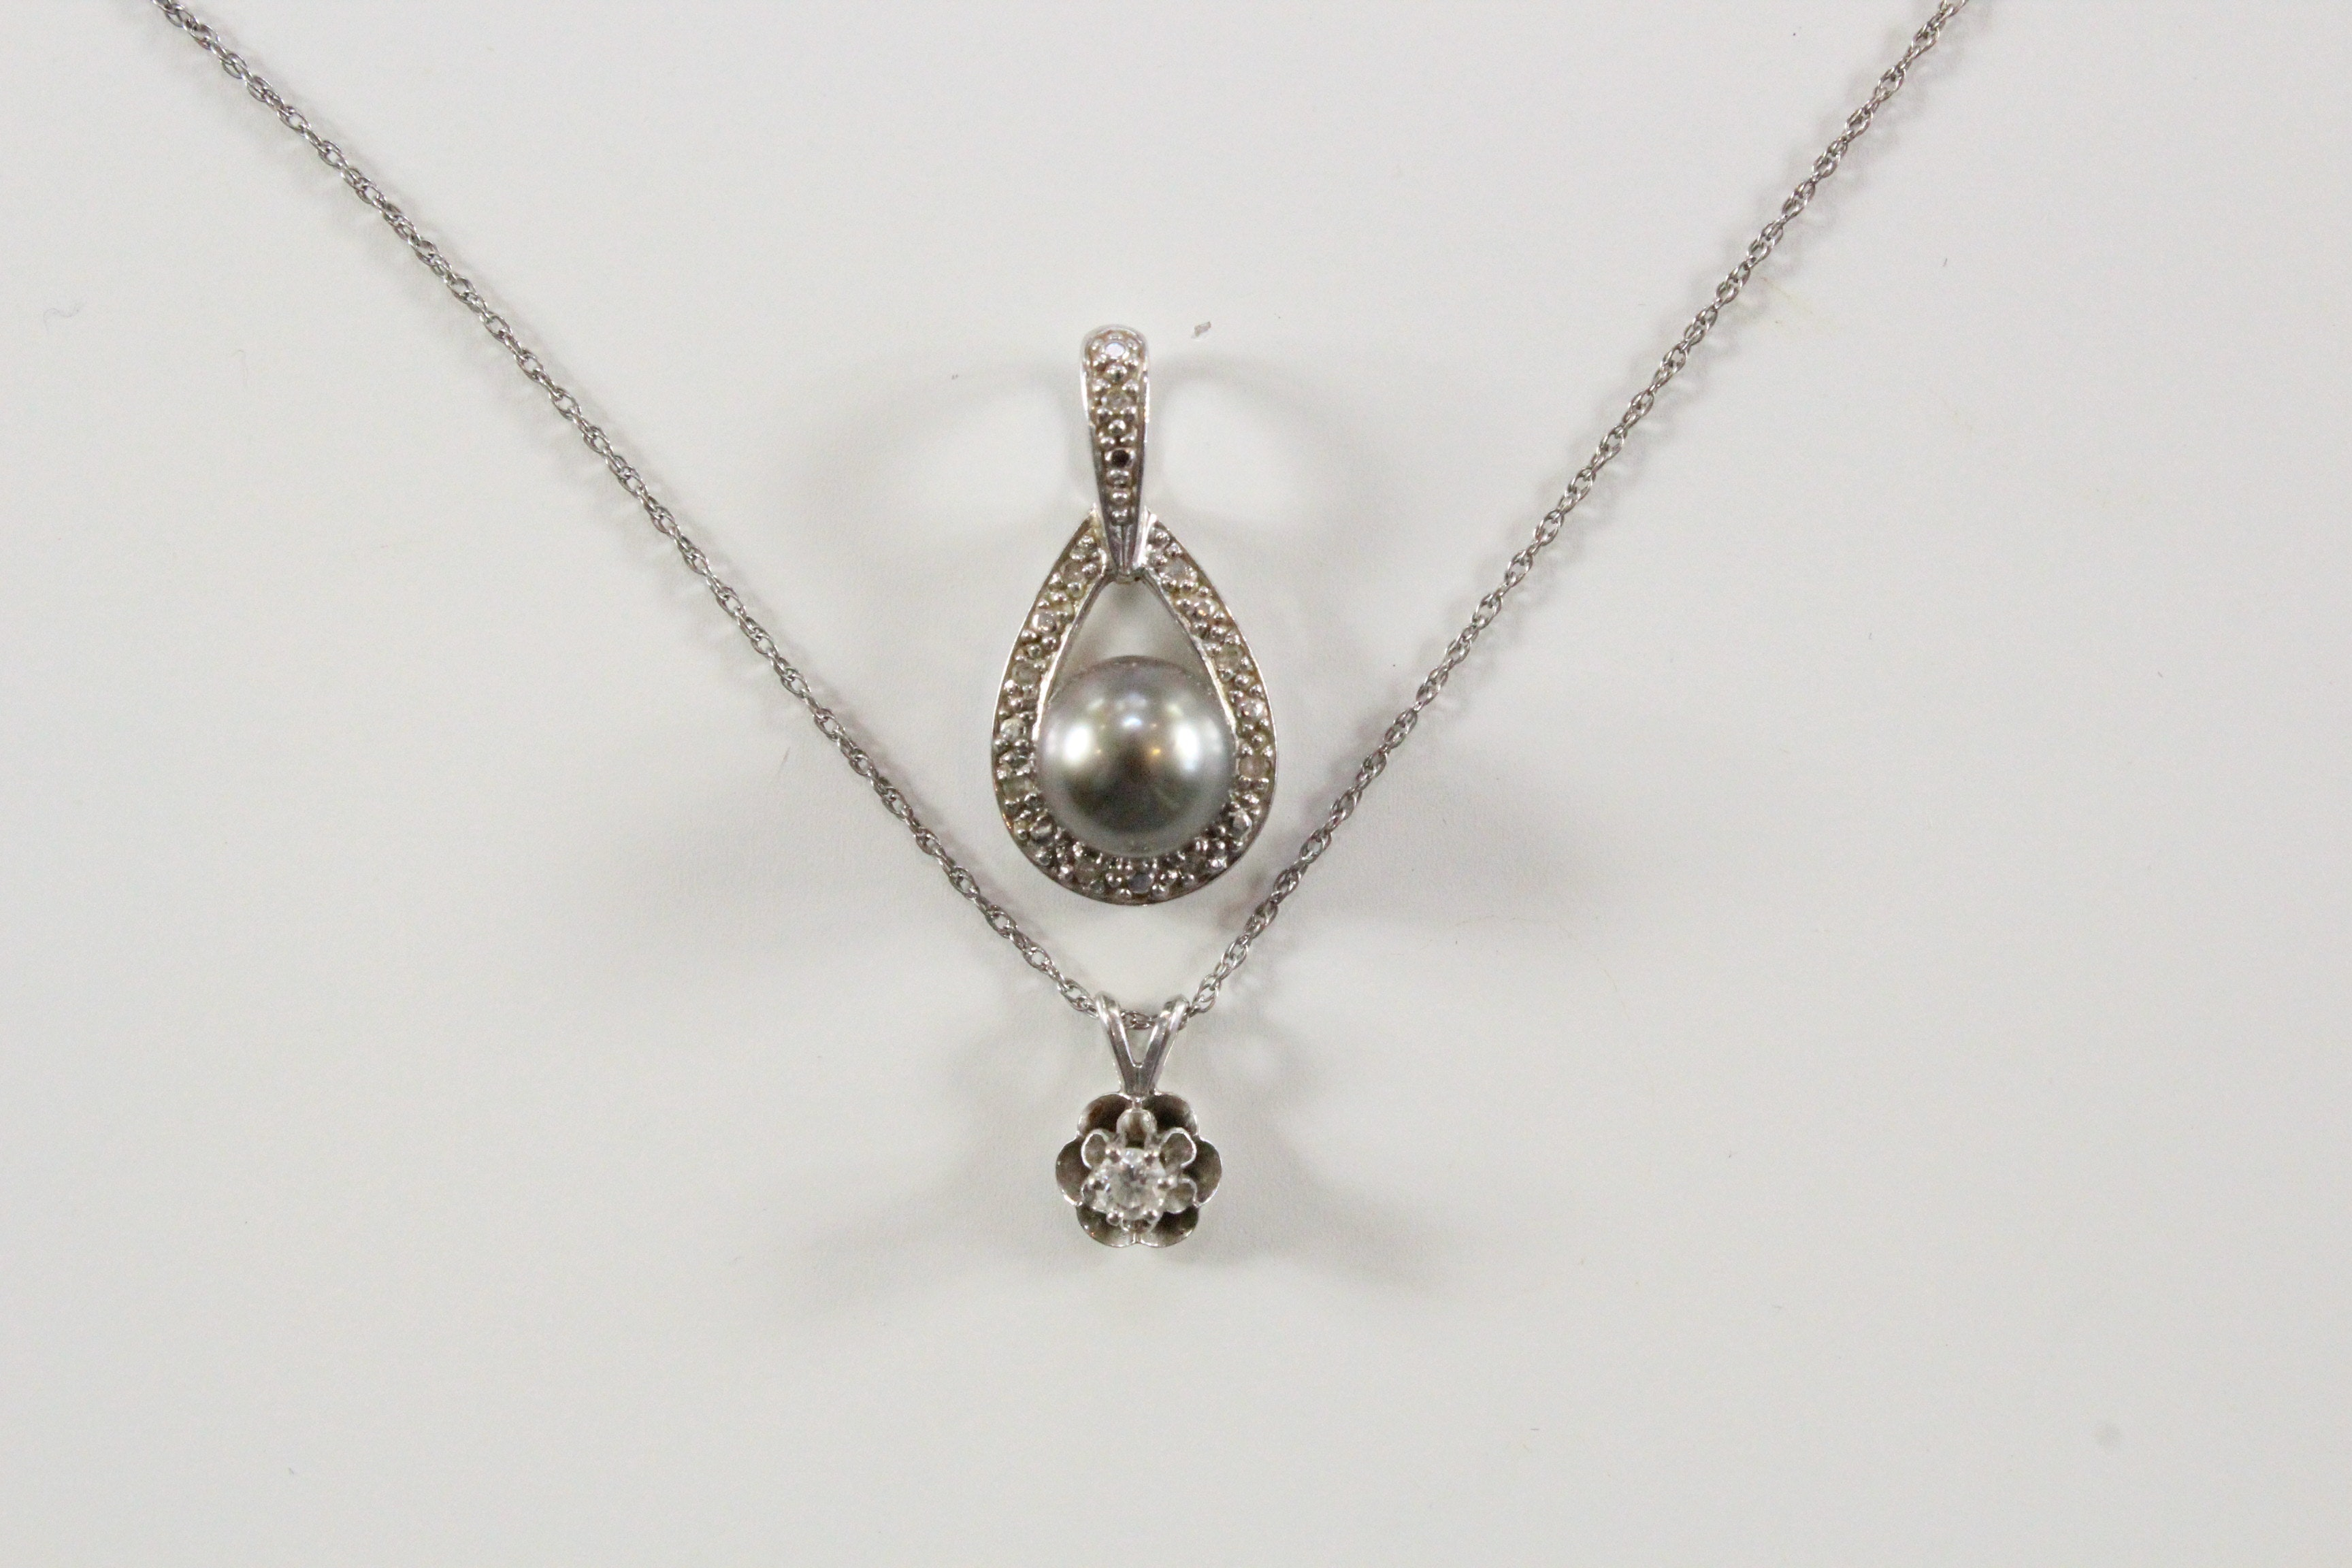 14k white gold pendant necklace and tahitian black pearl